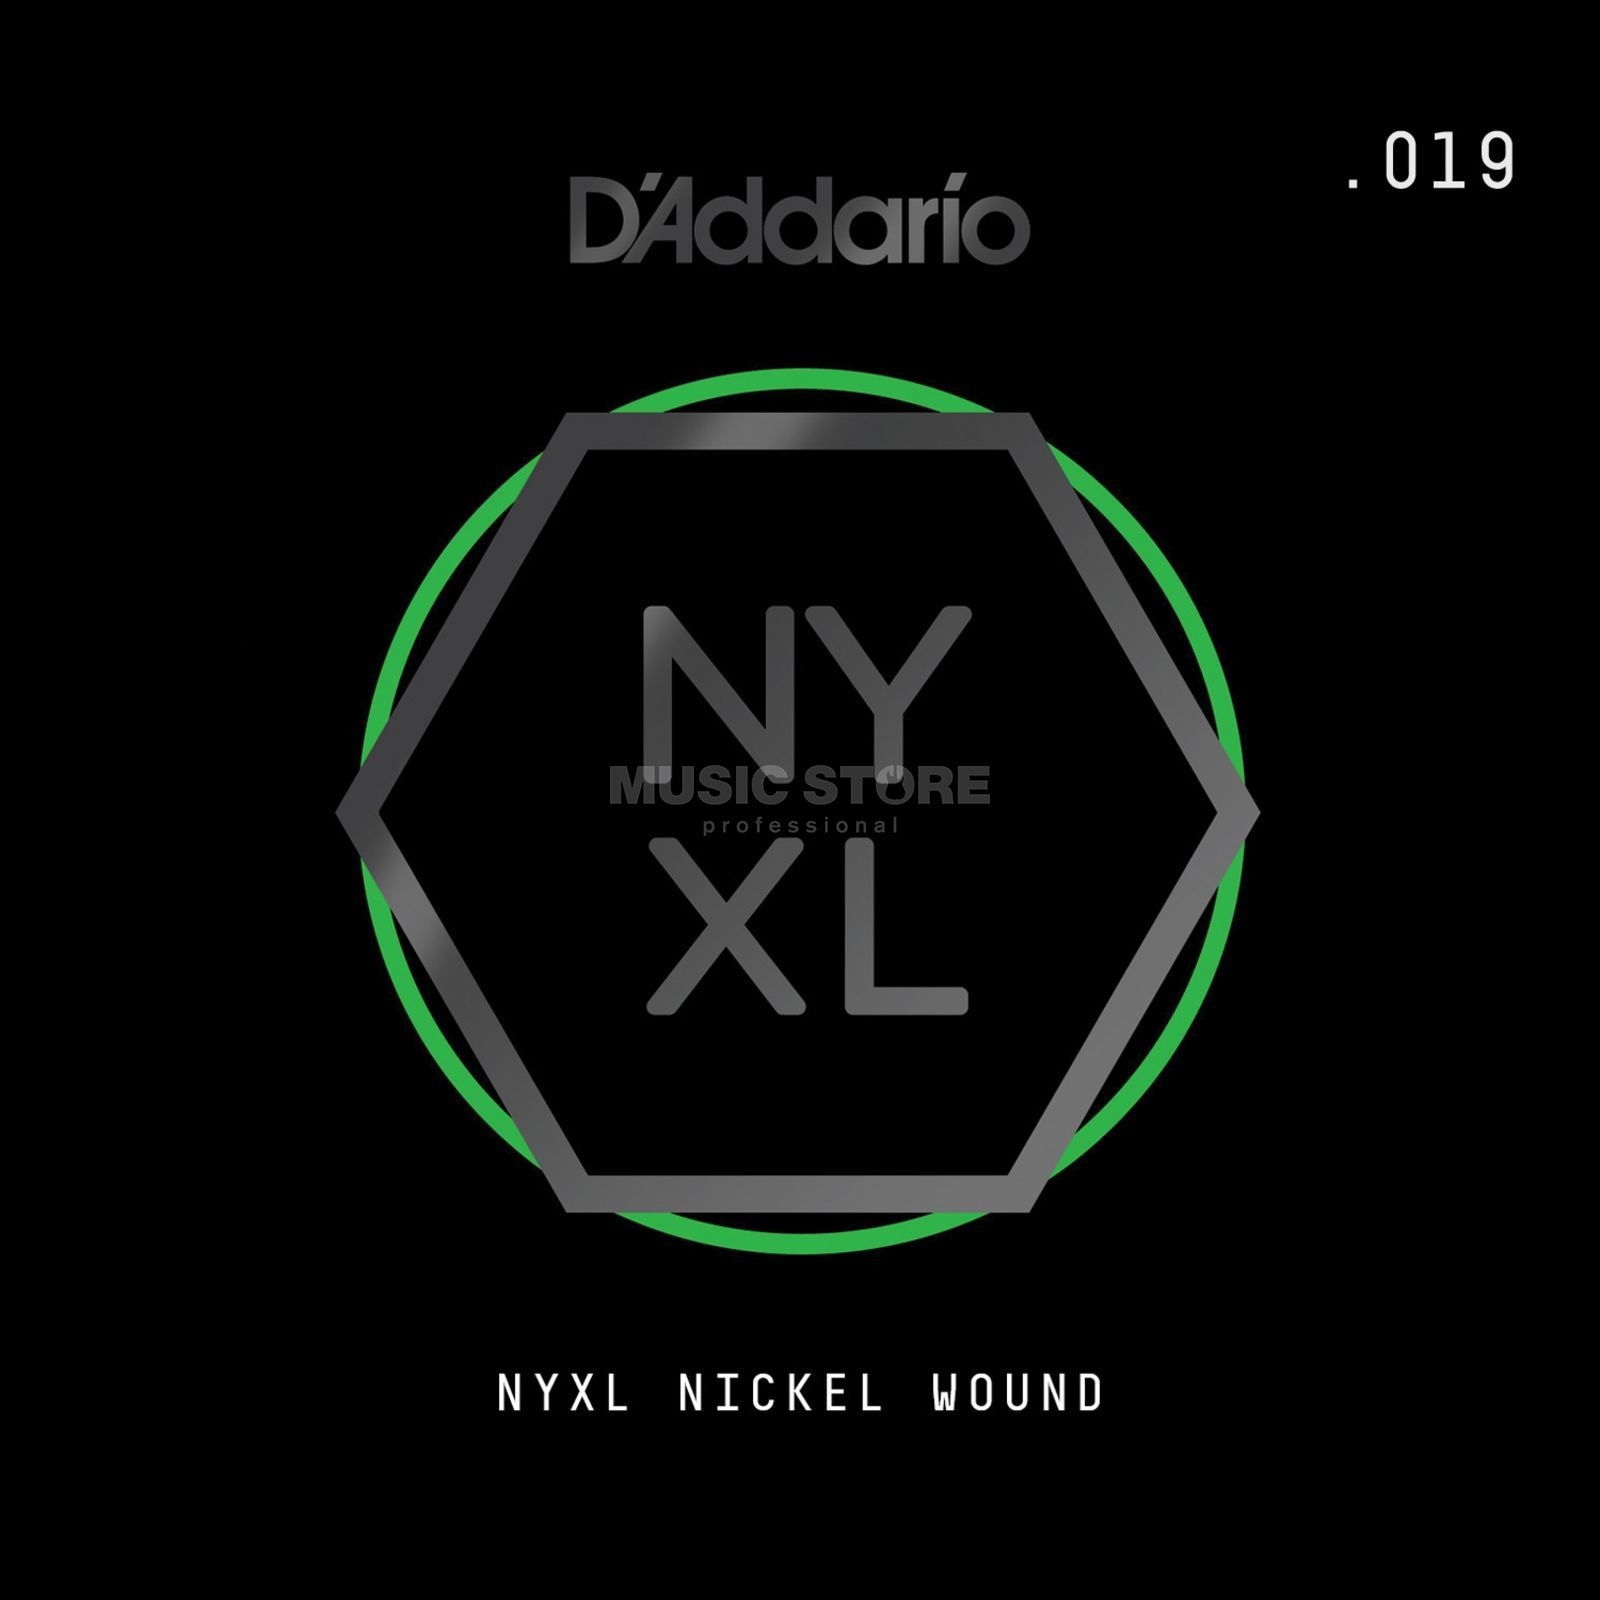 D'Addario NYNW019 Single String Nickel Wound Image du produit